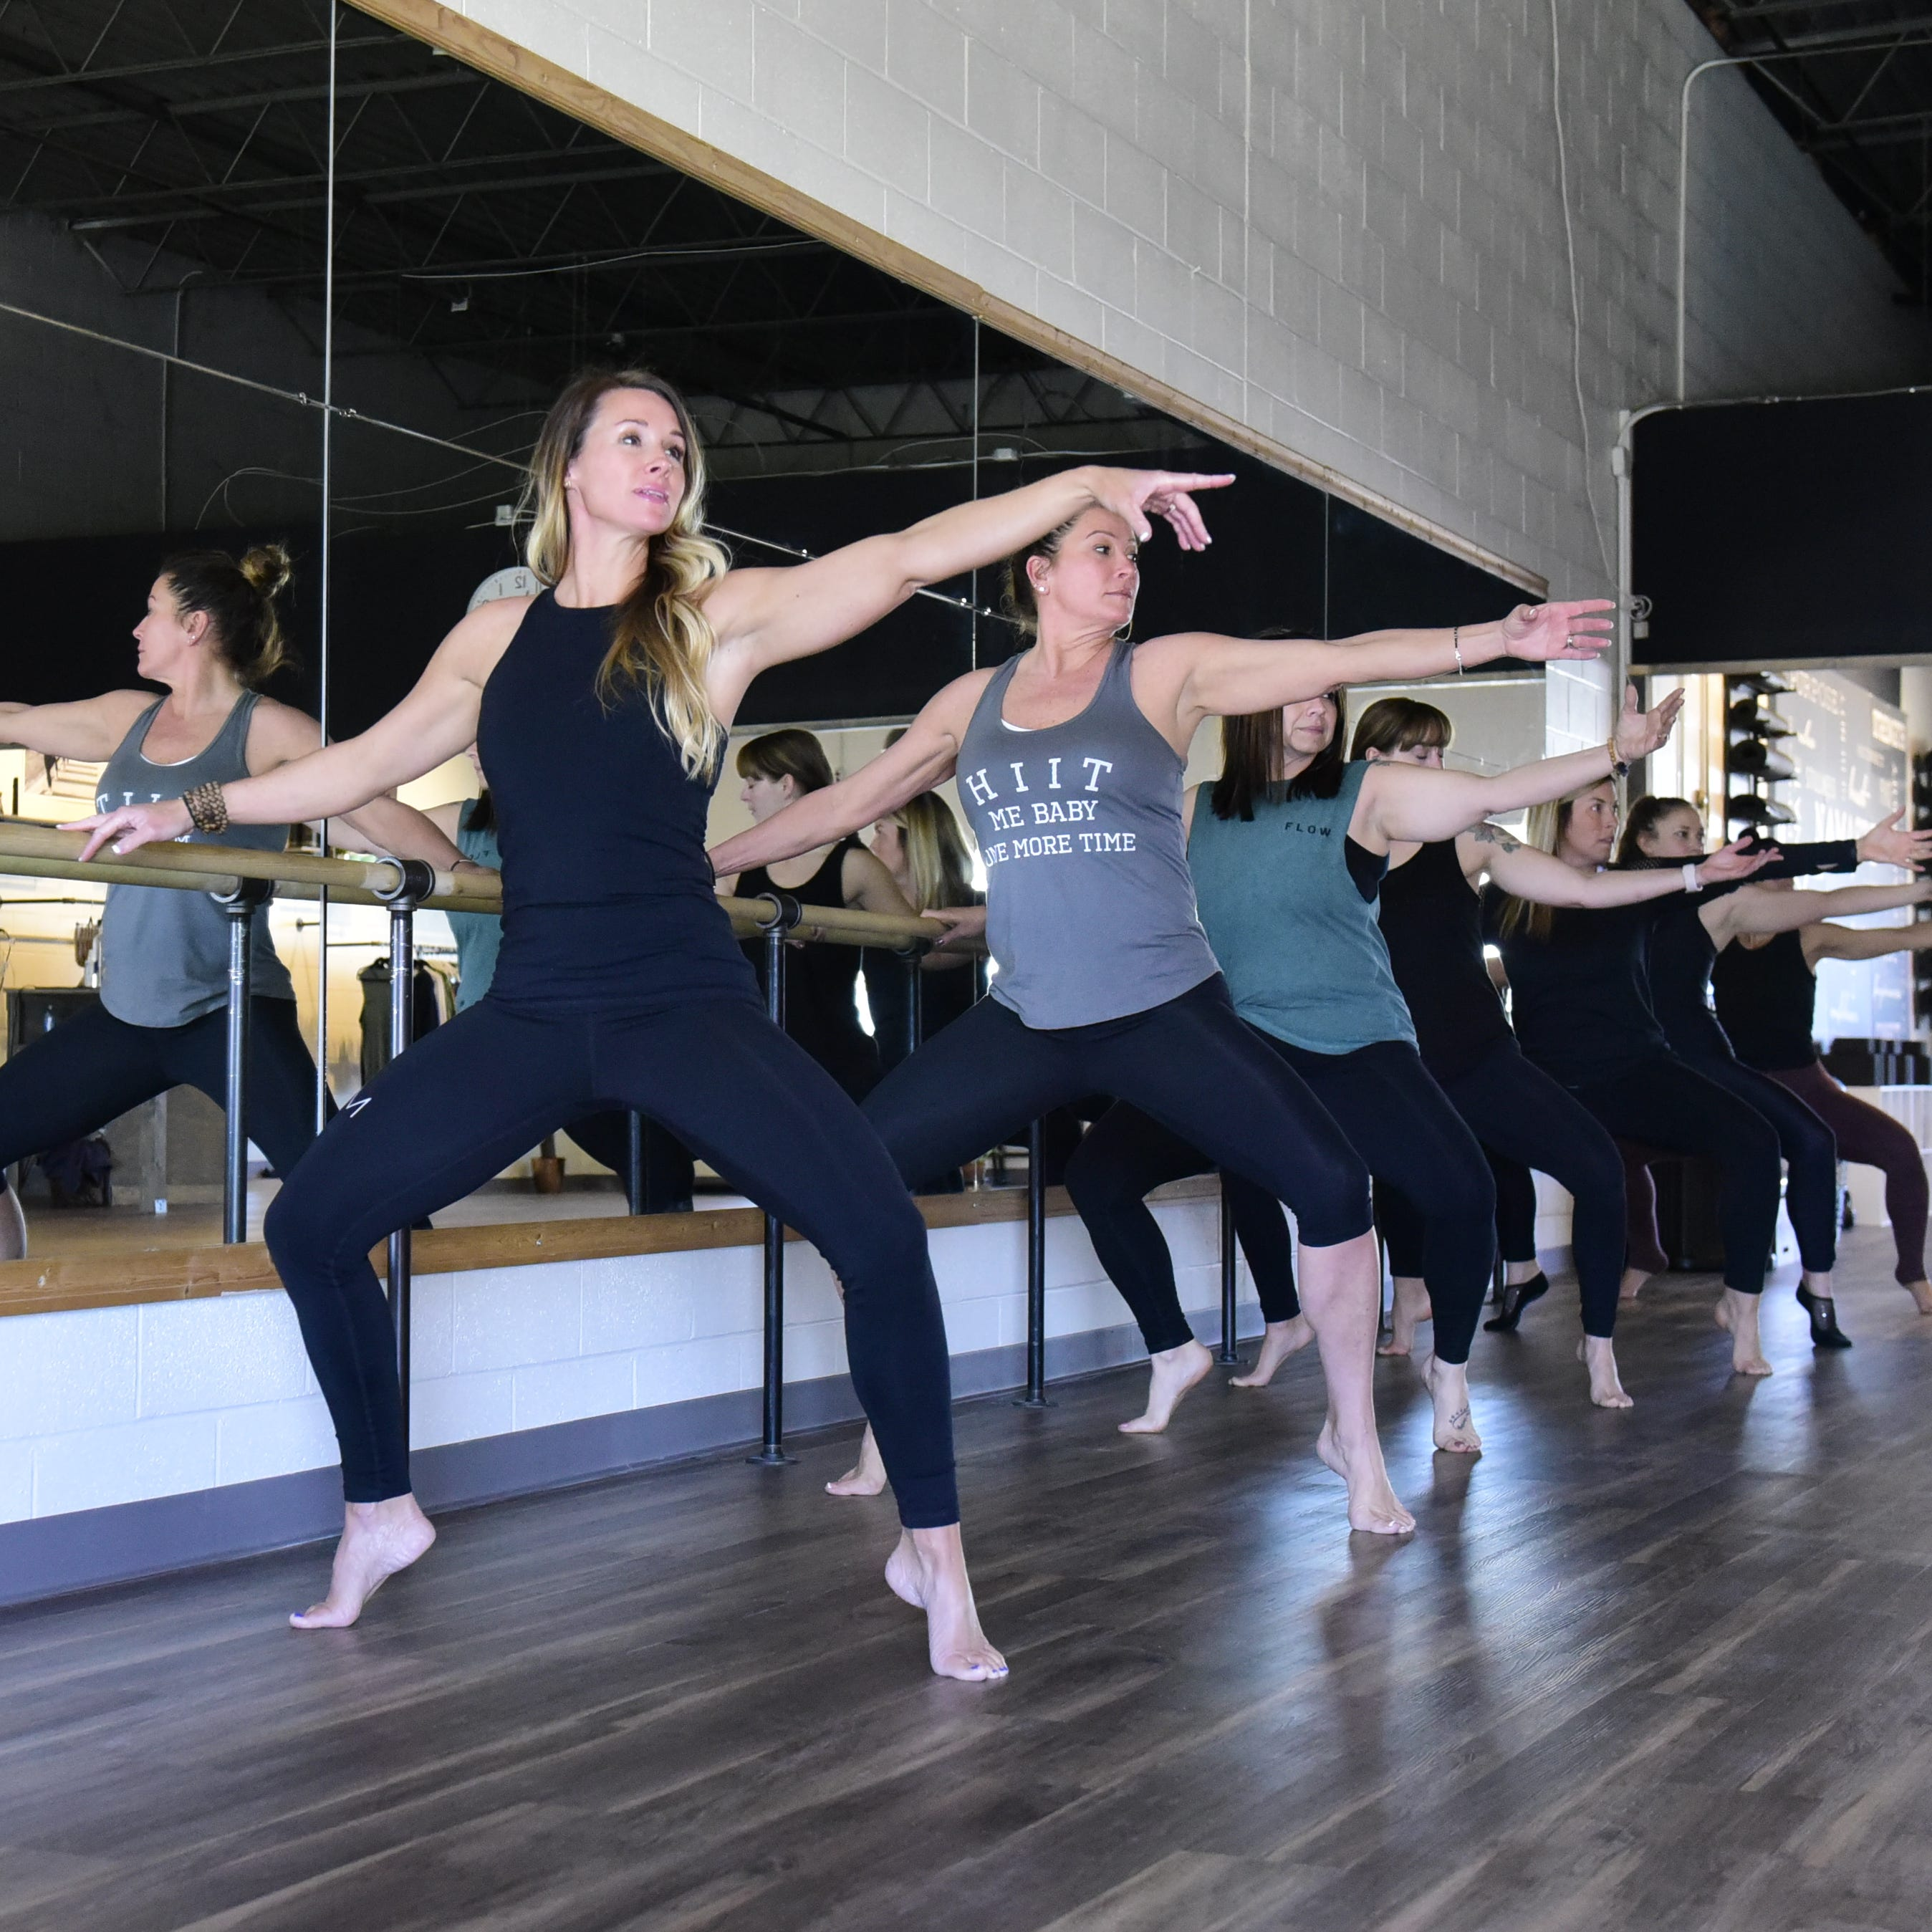 Evolve Studio brings Booty Barre technique to Lexington